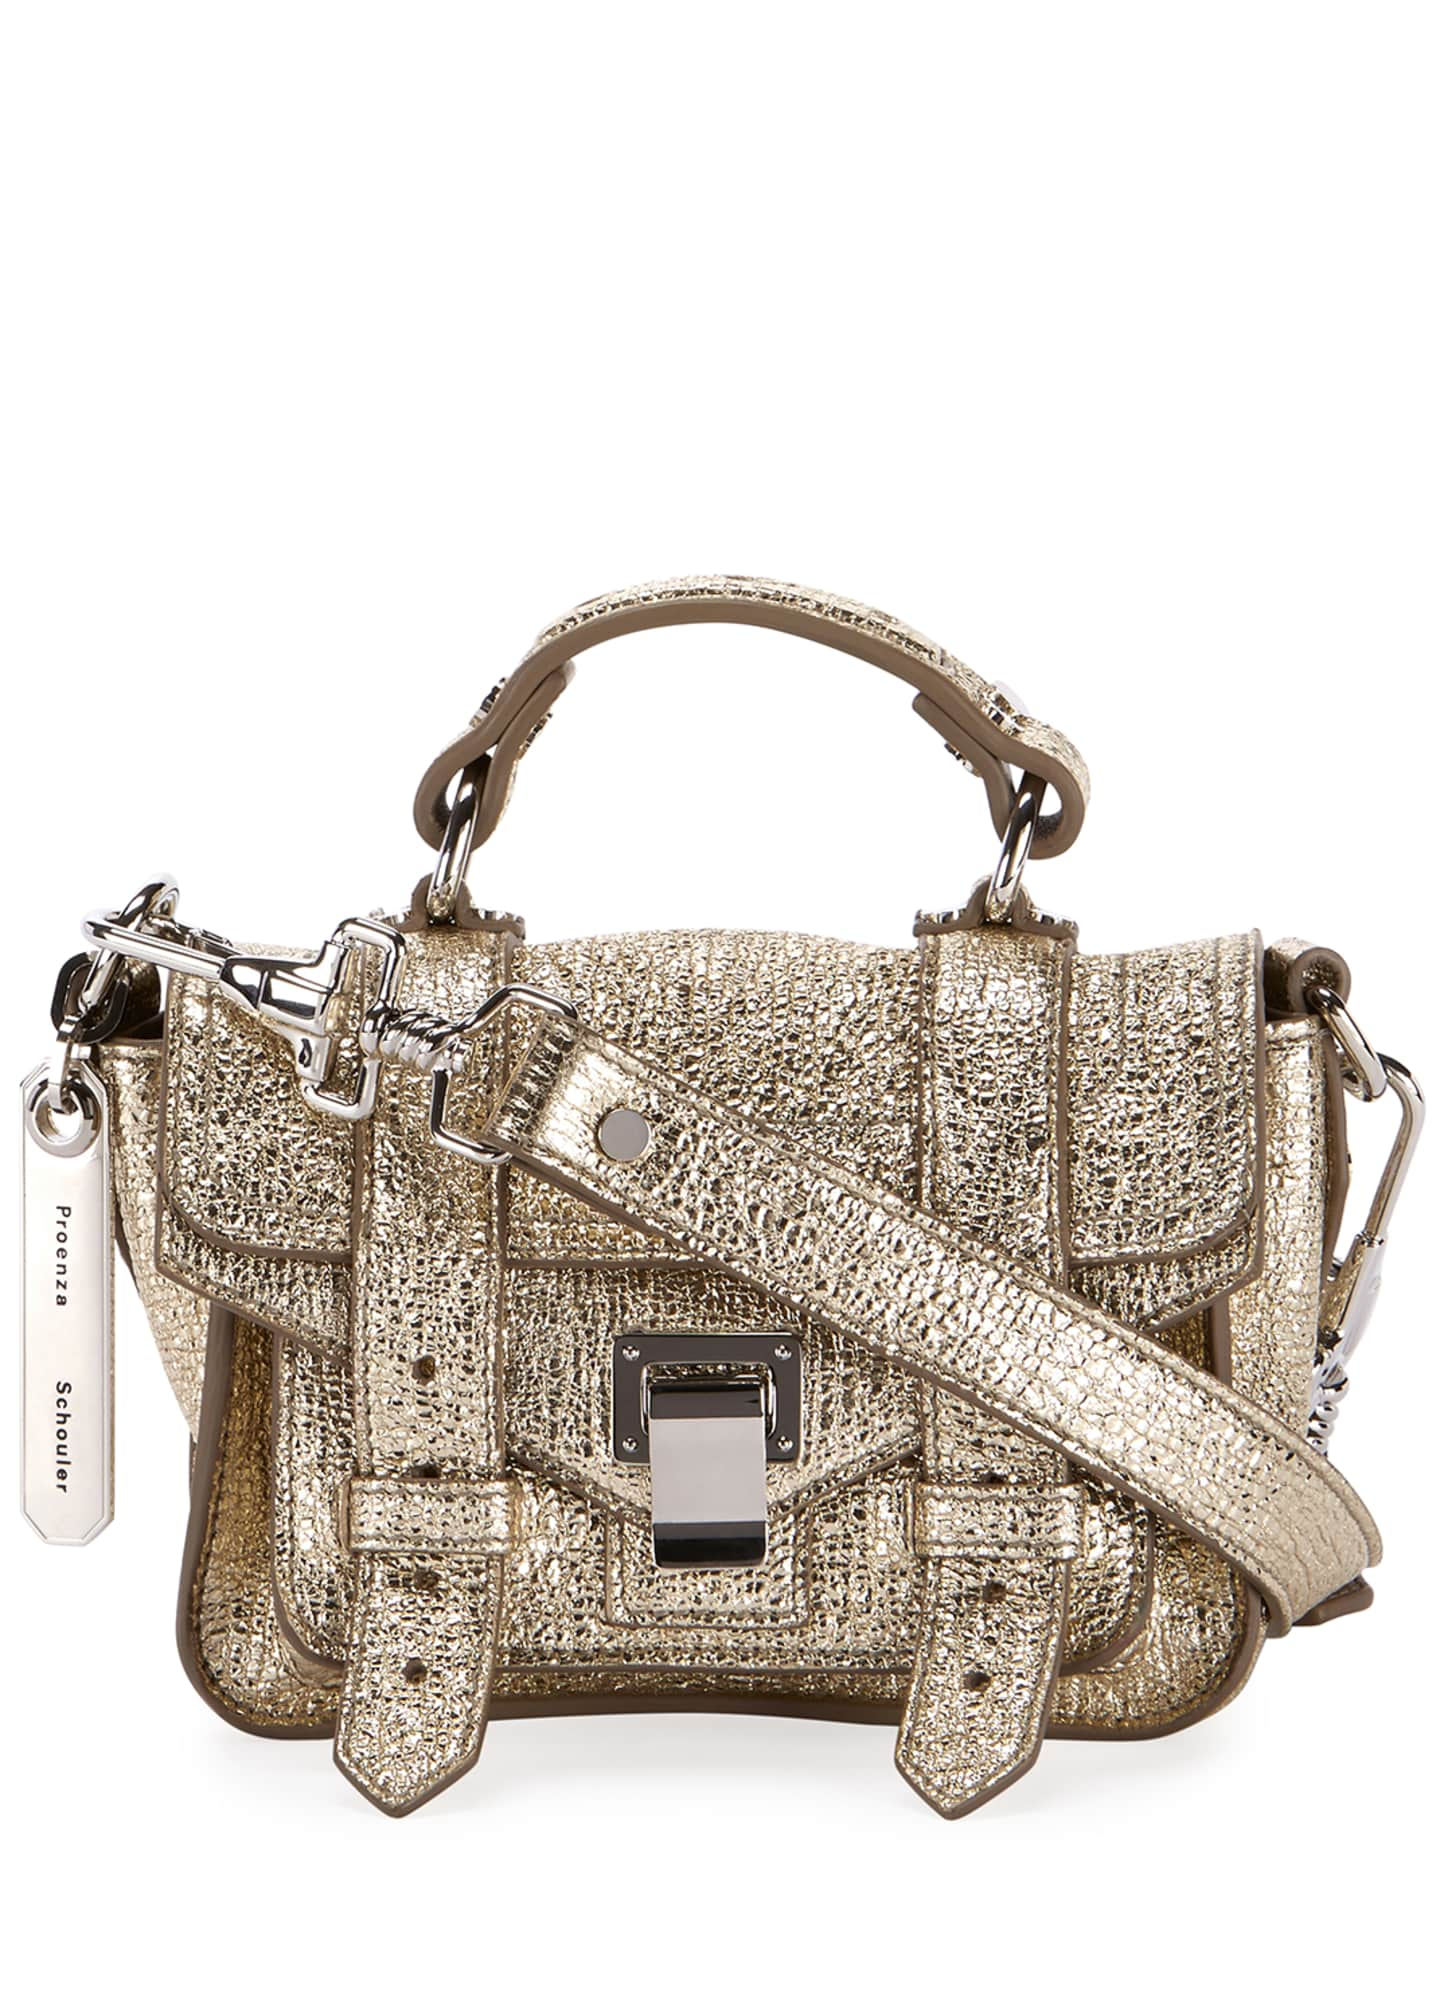 Proenza Schouler Ps1 Micro Lux Metallic Crossbody Bag